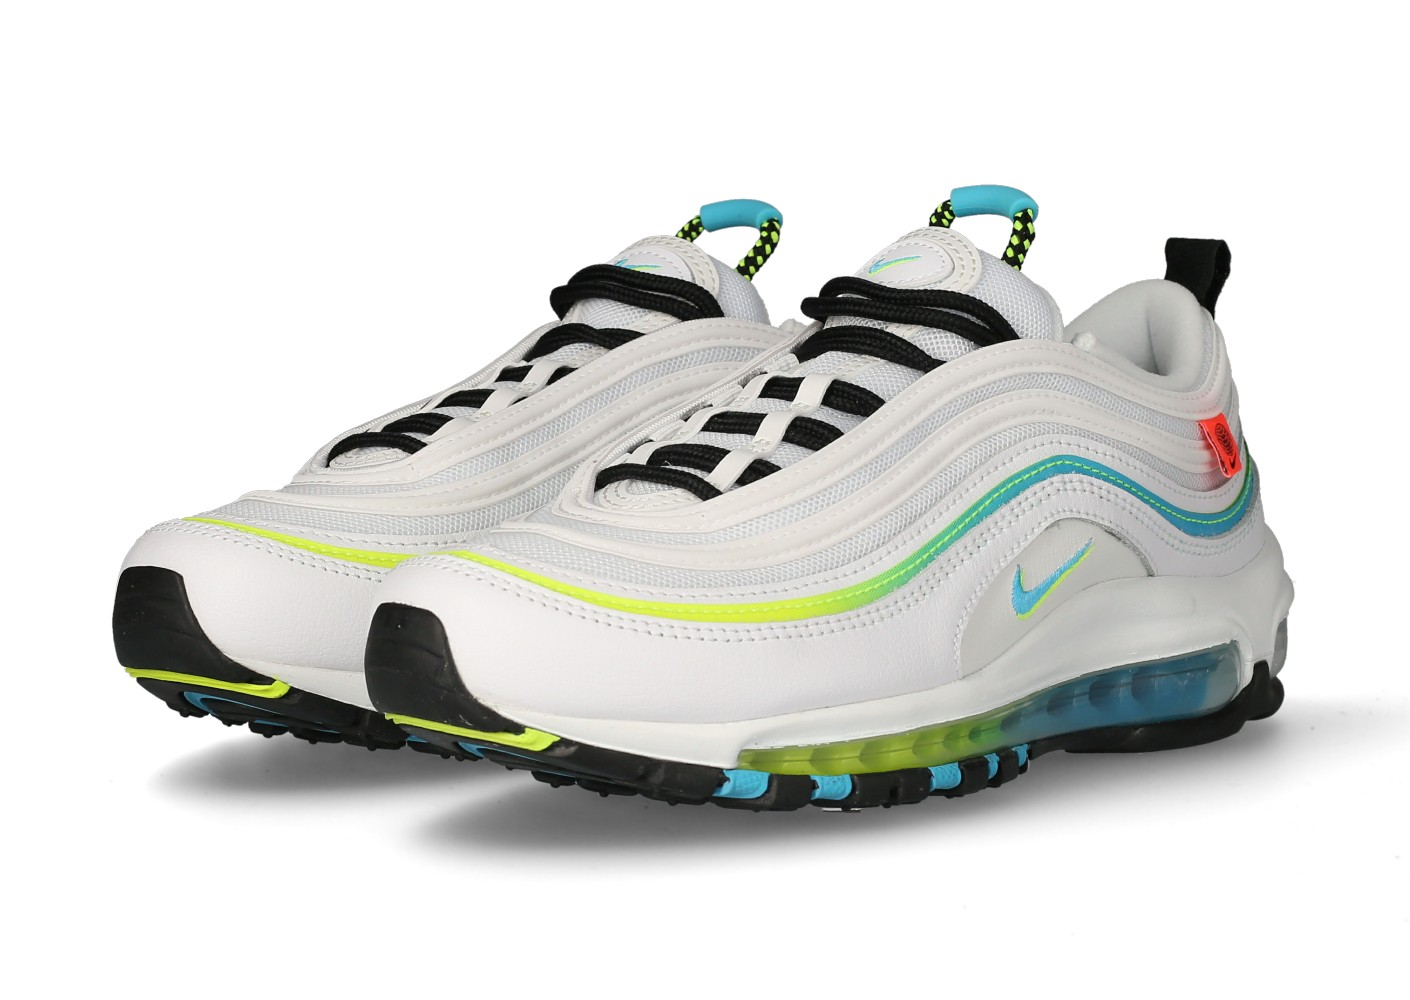 Nike Air Max 97 Worldwide blanche - Chaussures Baskets homme ...